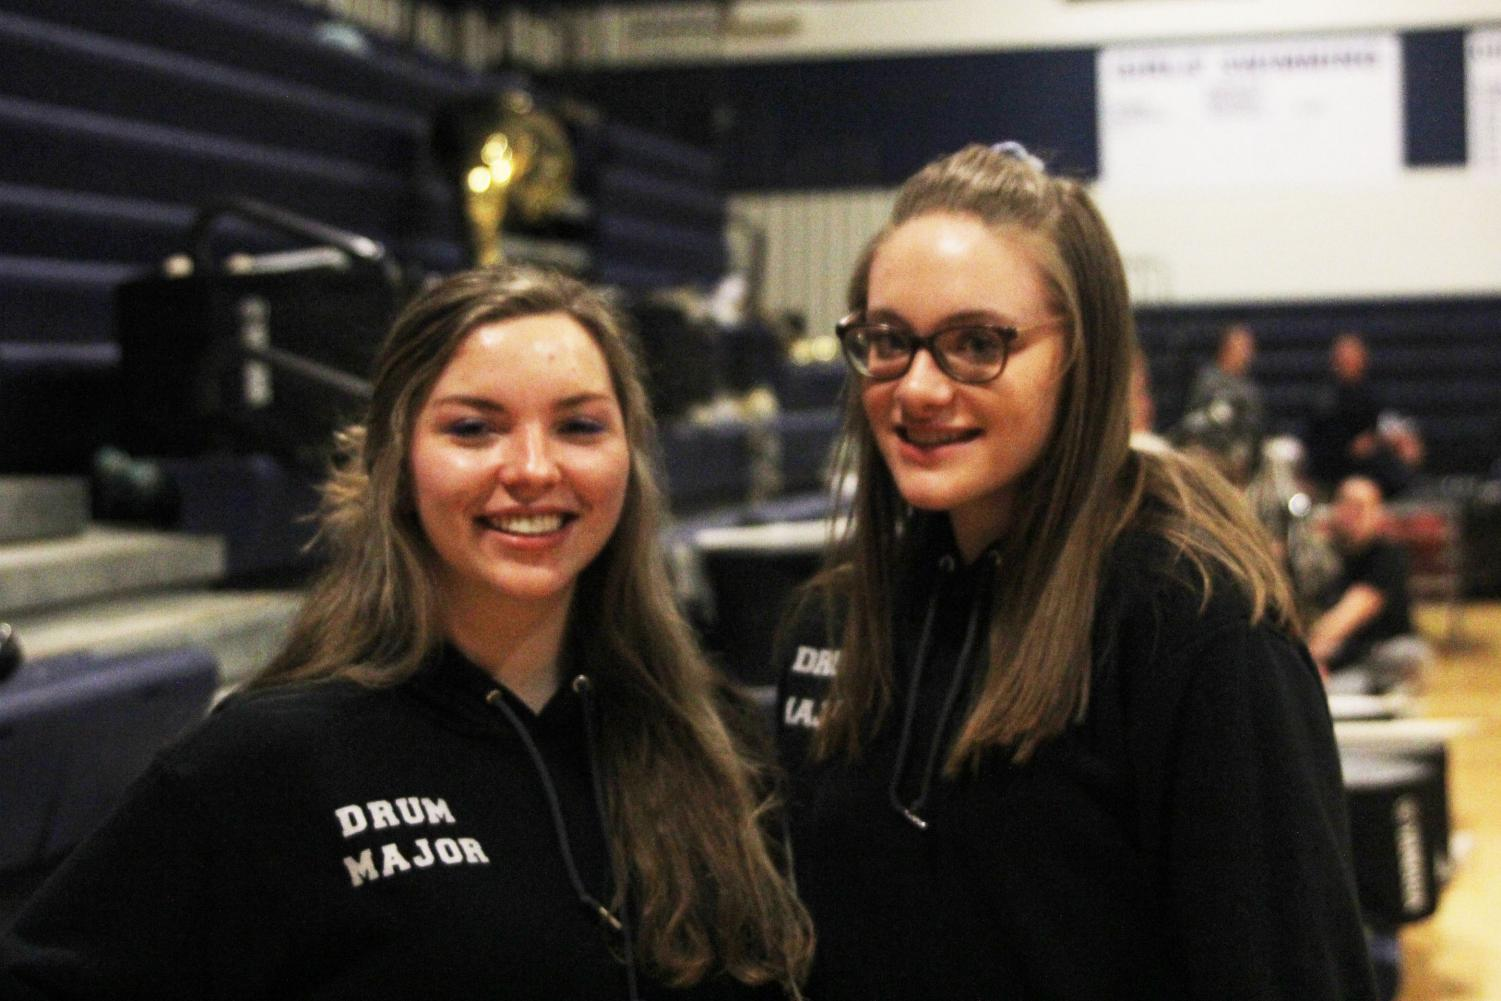 Junior drum majors Kaleigh Johnston and Amber Guilfoil stand in front of the band section during the girl's basketball game on Thursday, Feb. 21